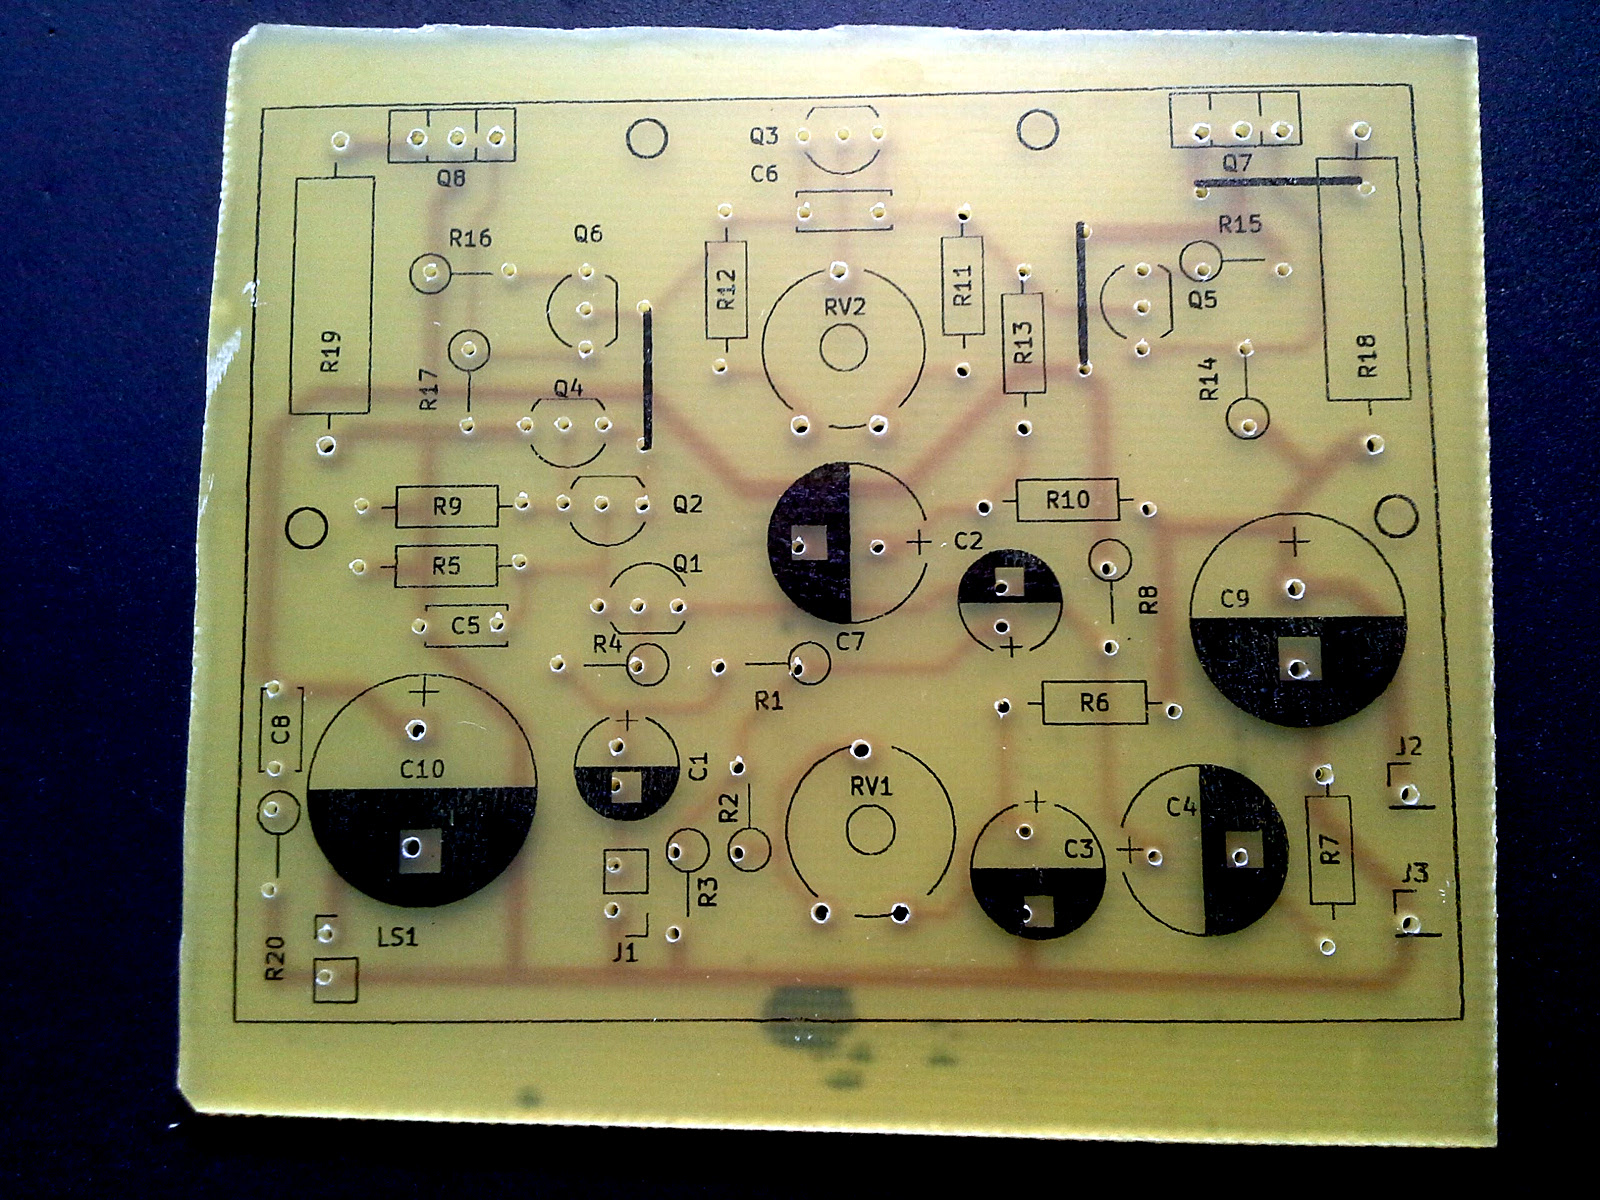 Homemade Pcb With Toner Transfer Method One Transistor Easy Ways To Etch A Circuit Board Pictures Incl Silkscreen